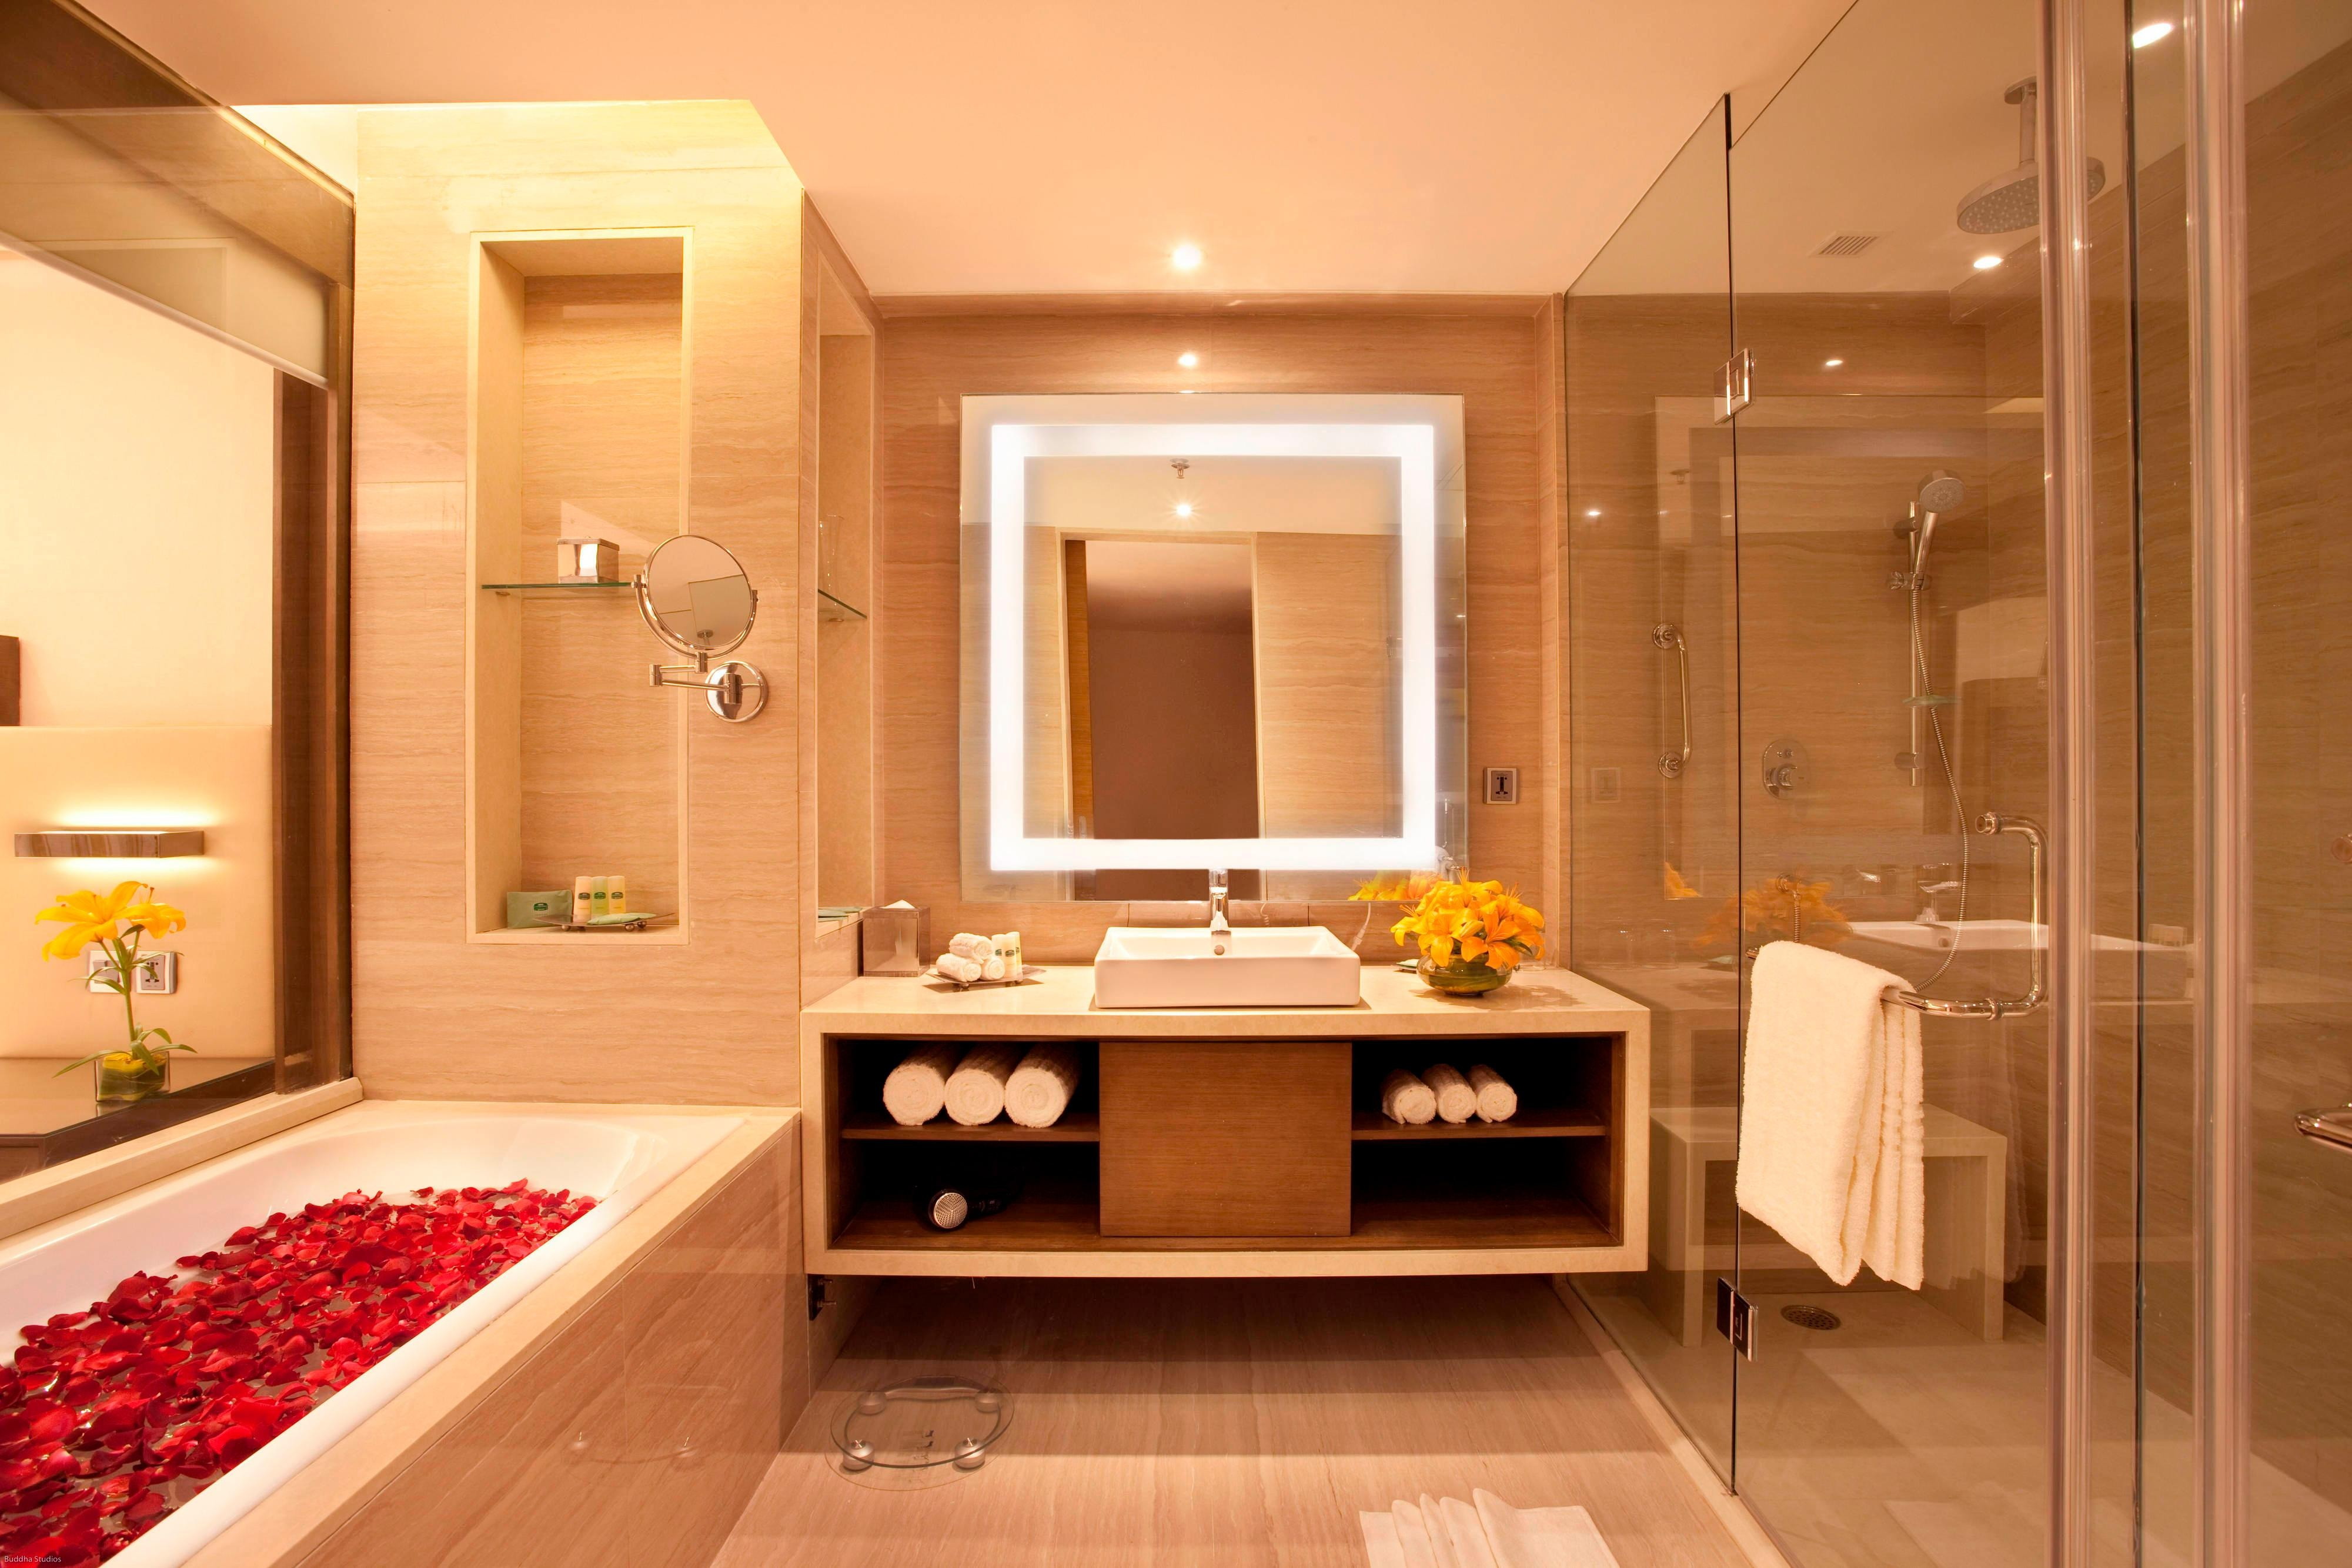 Courtyard Suite bathroom in Bhopal